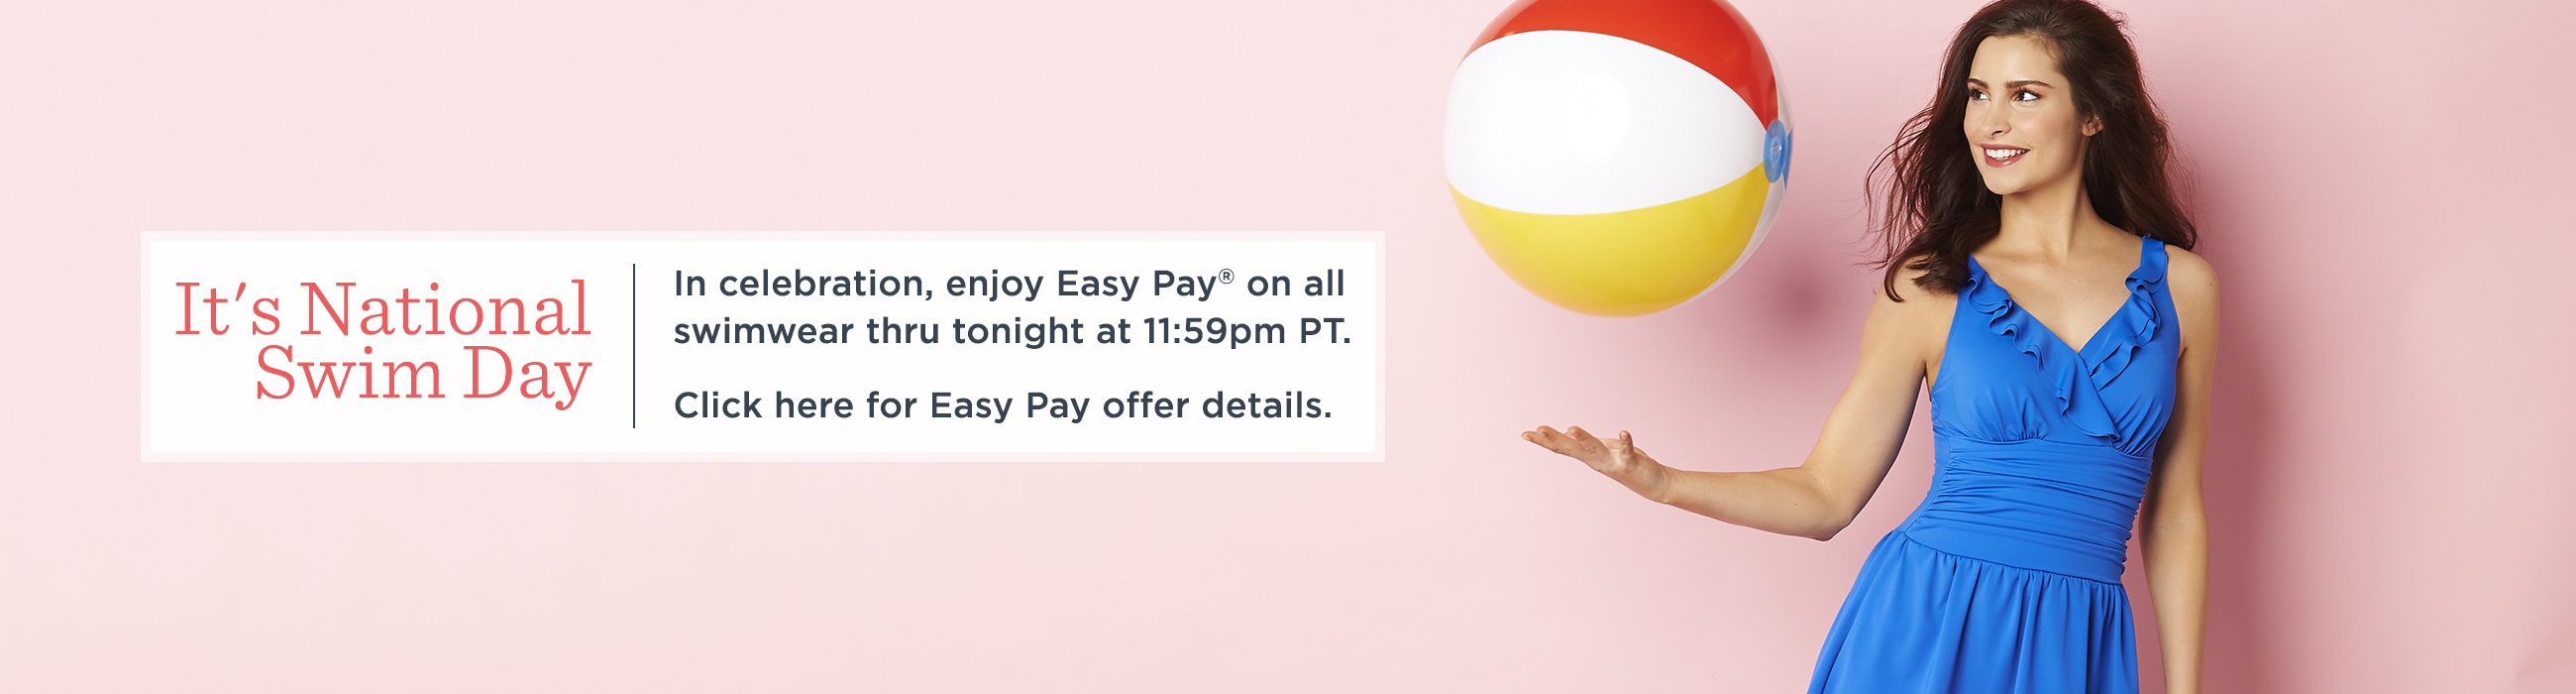 It's National Swim Day.  In celebration, enjoy Easy Pay® on all swimwear thru tonight at 11:59pm PT.  Click here for Easy Pay offer details.